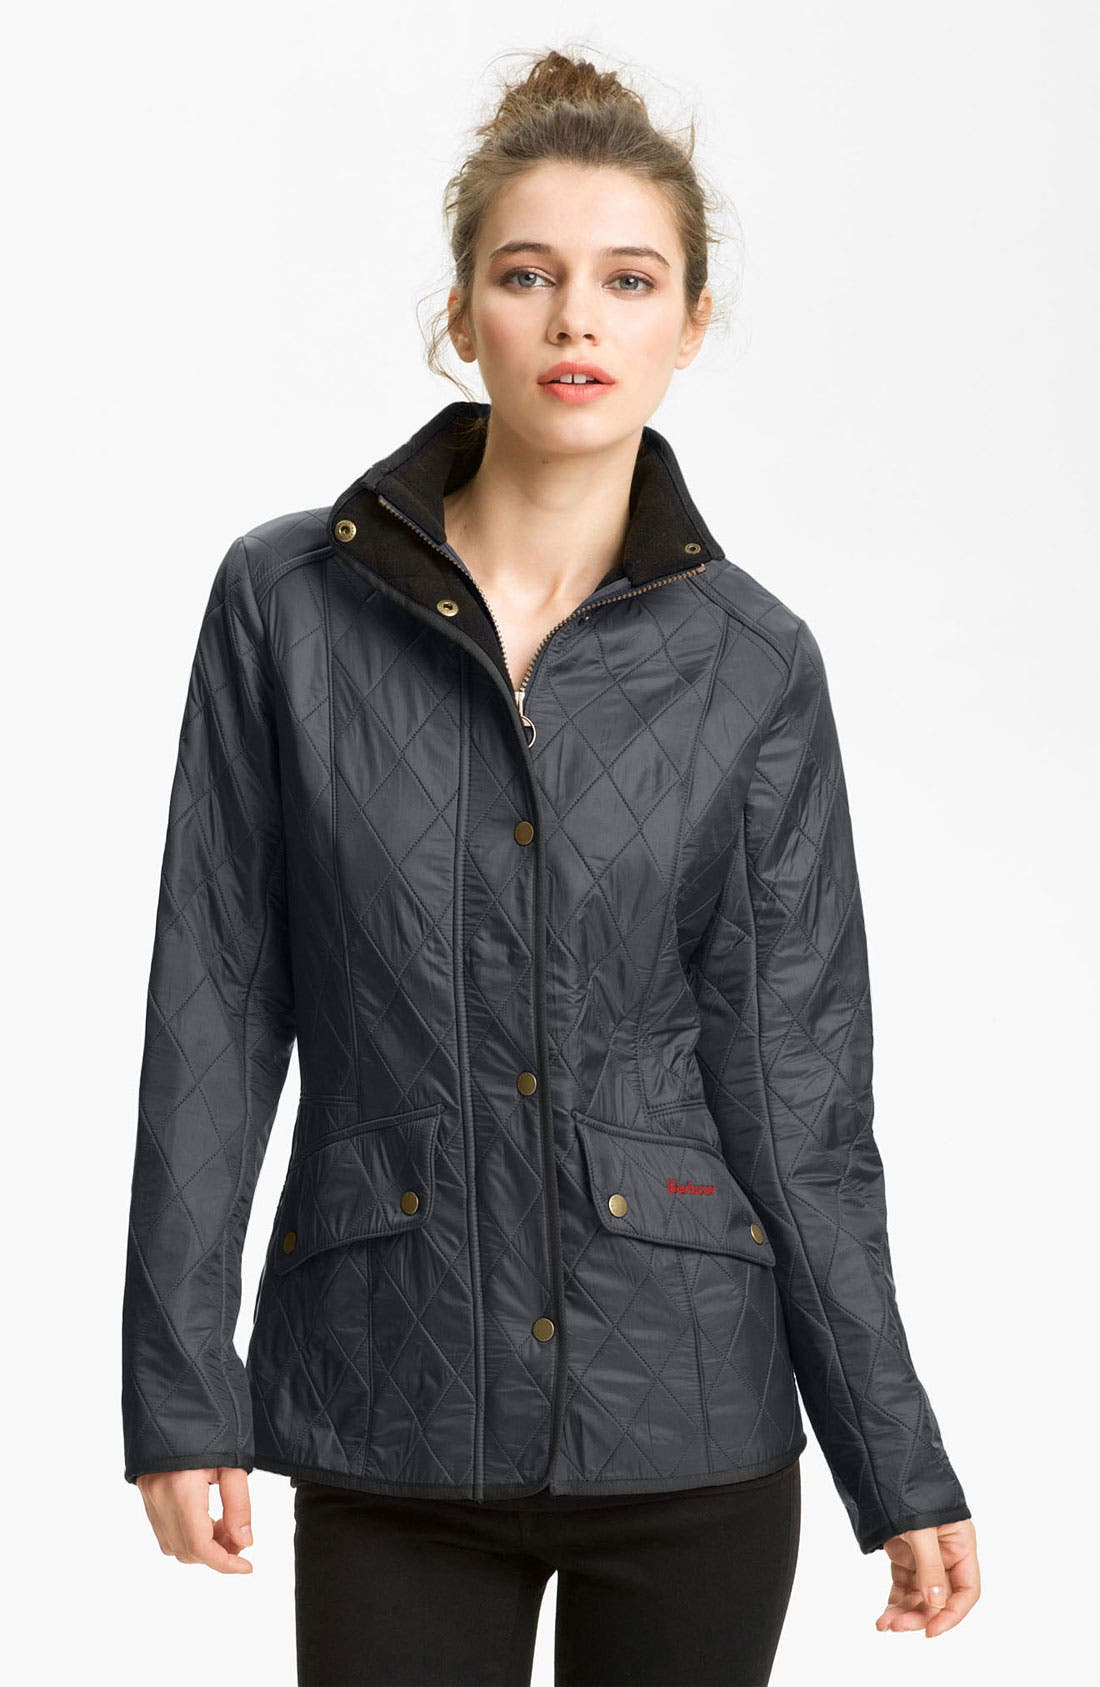 Metal Gear As Well Barbour Ashby Jacket As Well Kitchen Utensils Names -